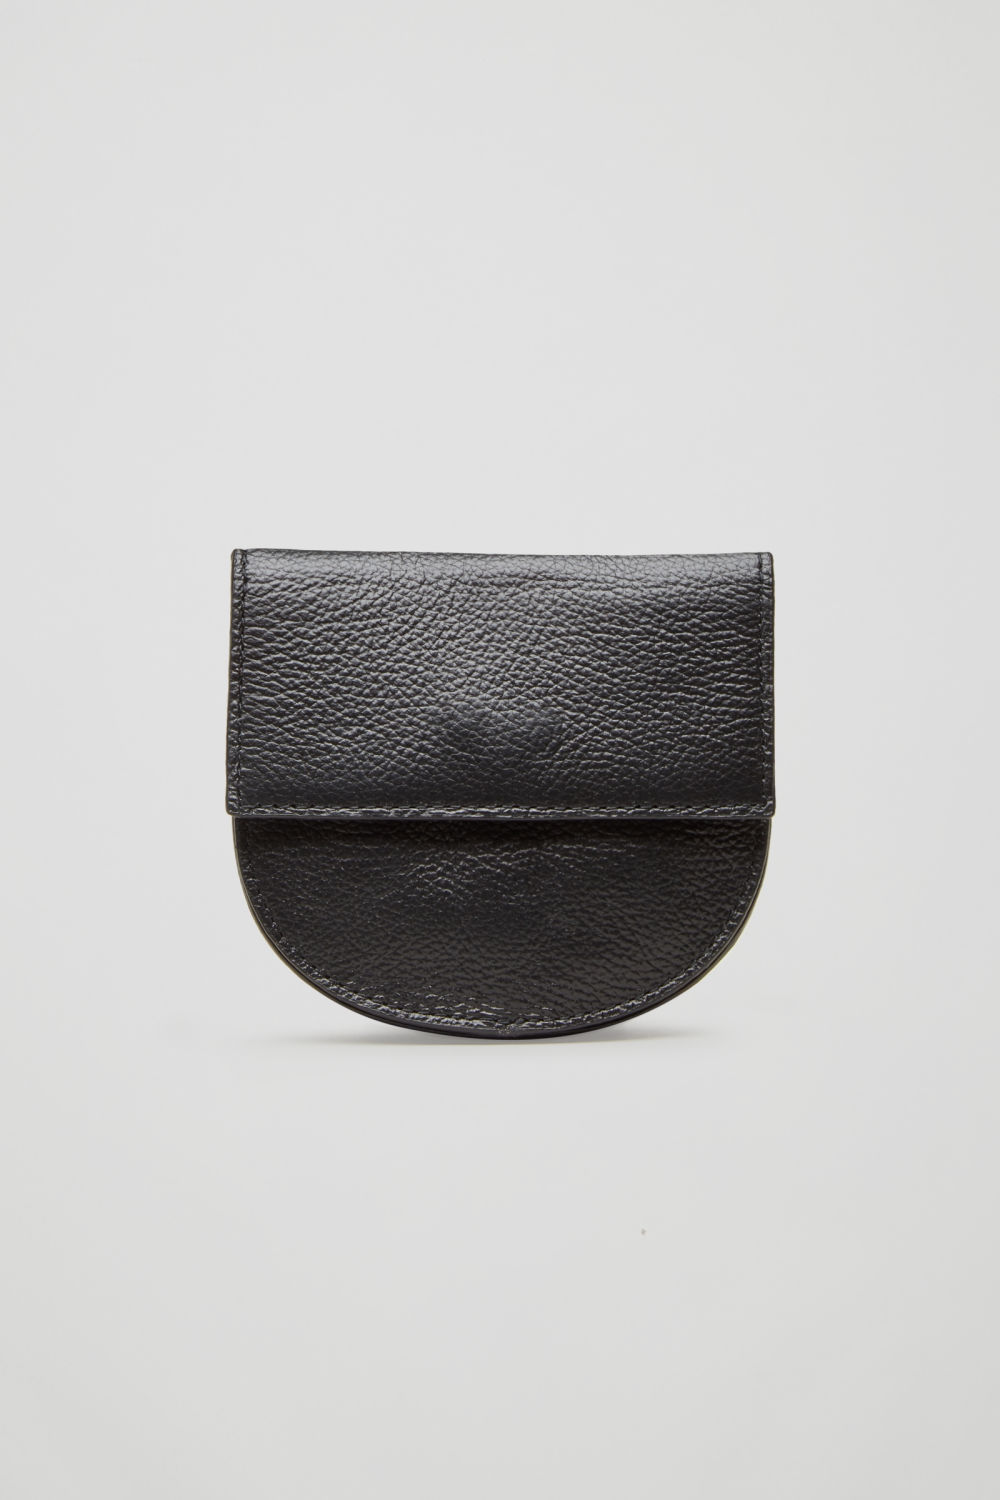 HALF-MOON LEATHER PURSE